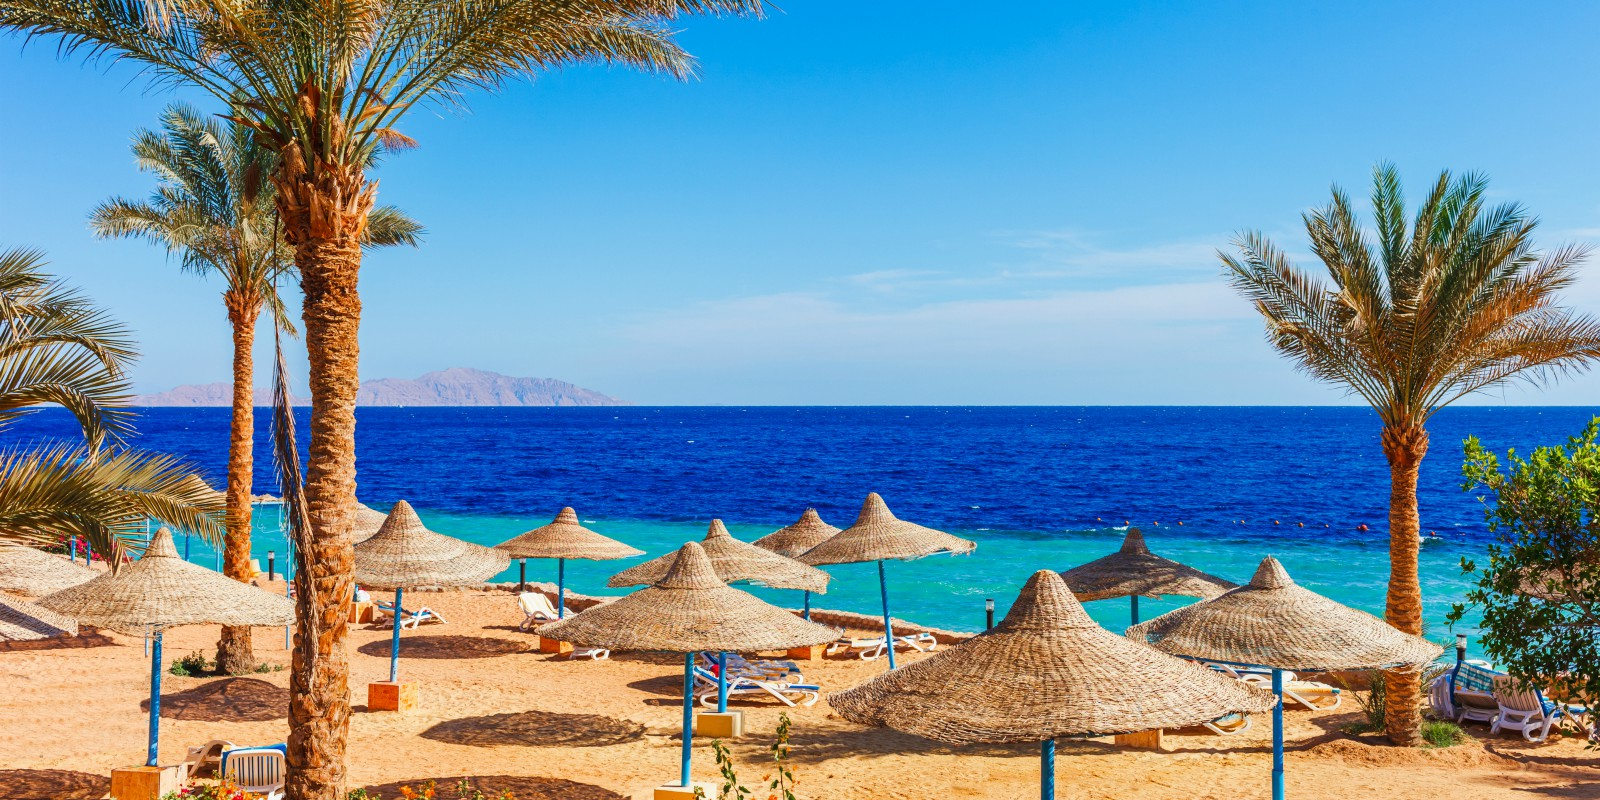 Travel blog: Back for 2020 – Sharm el Sheikh